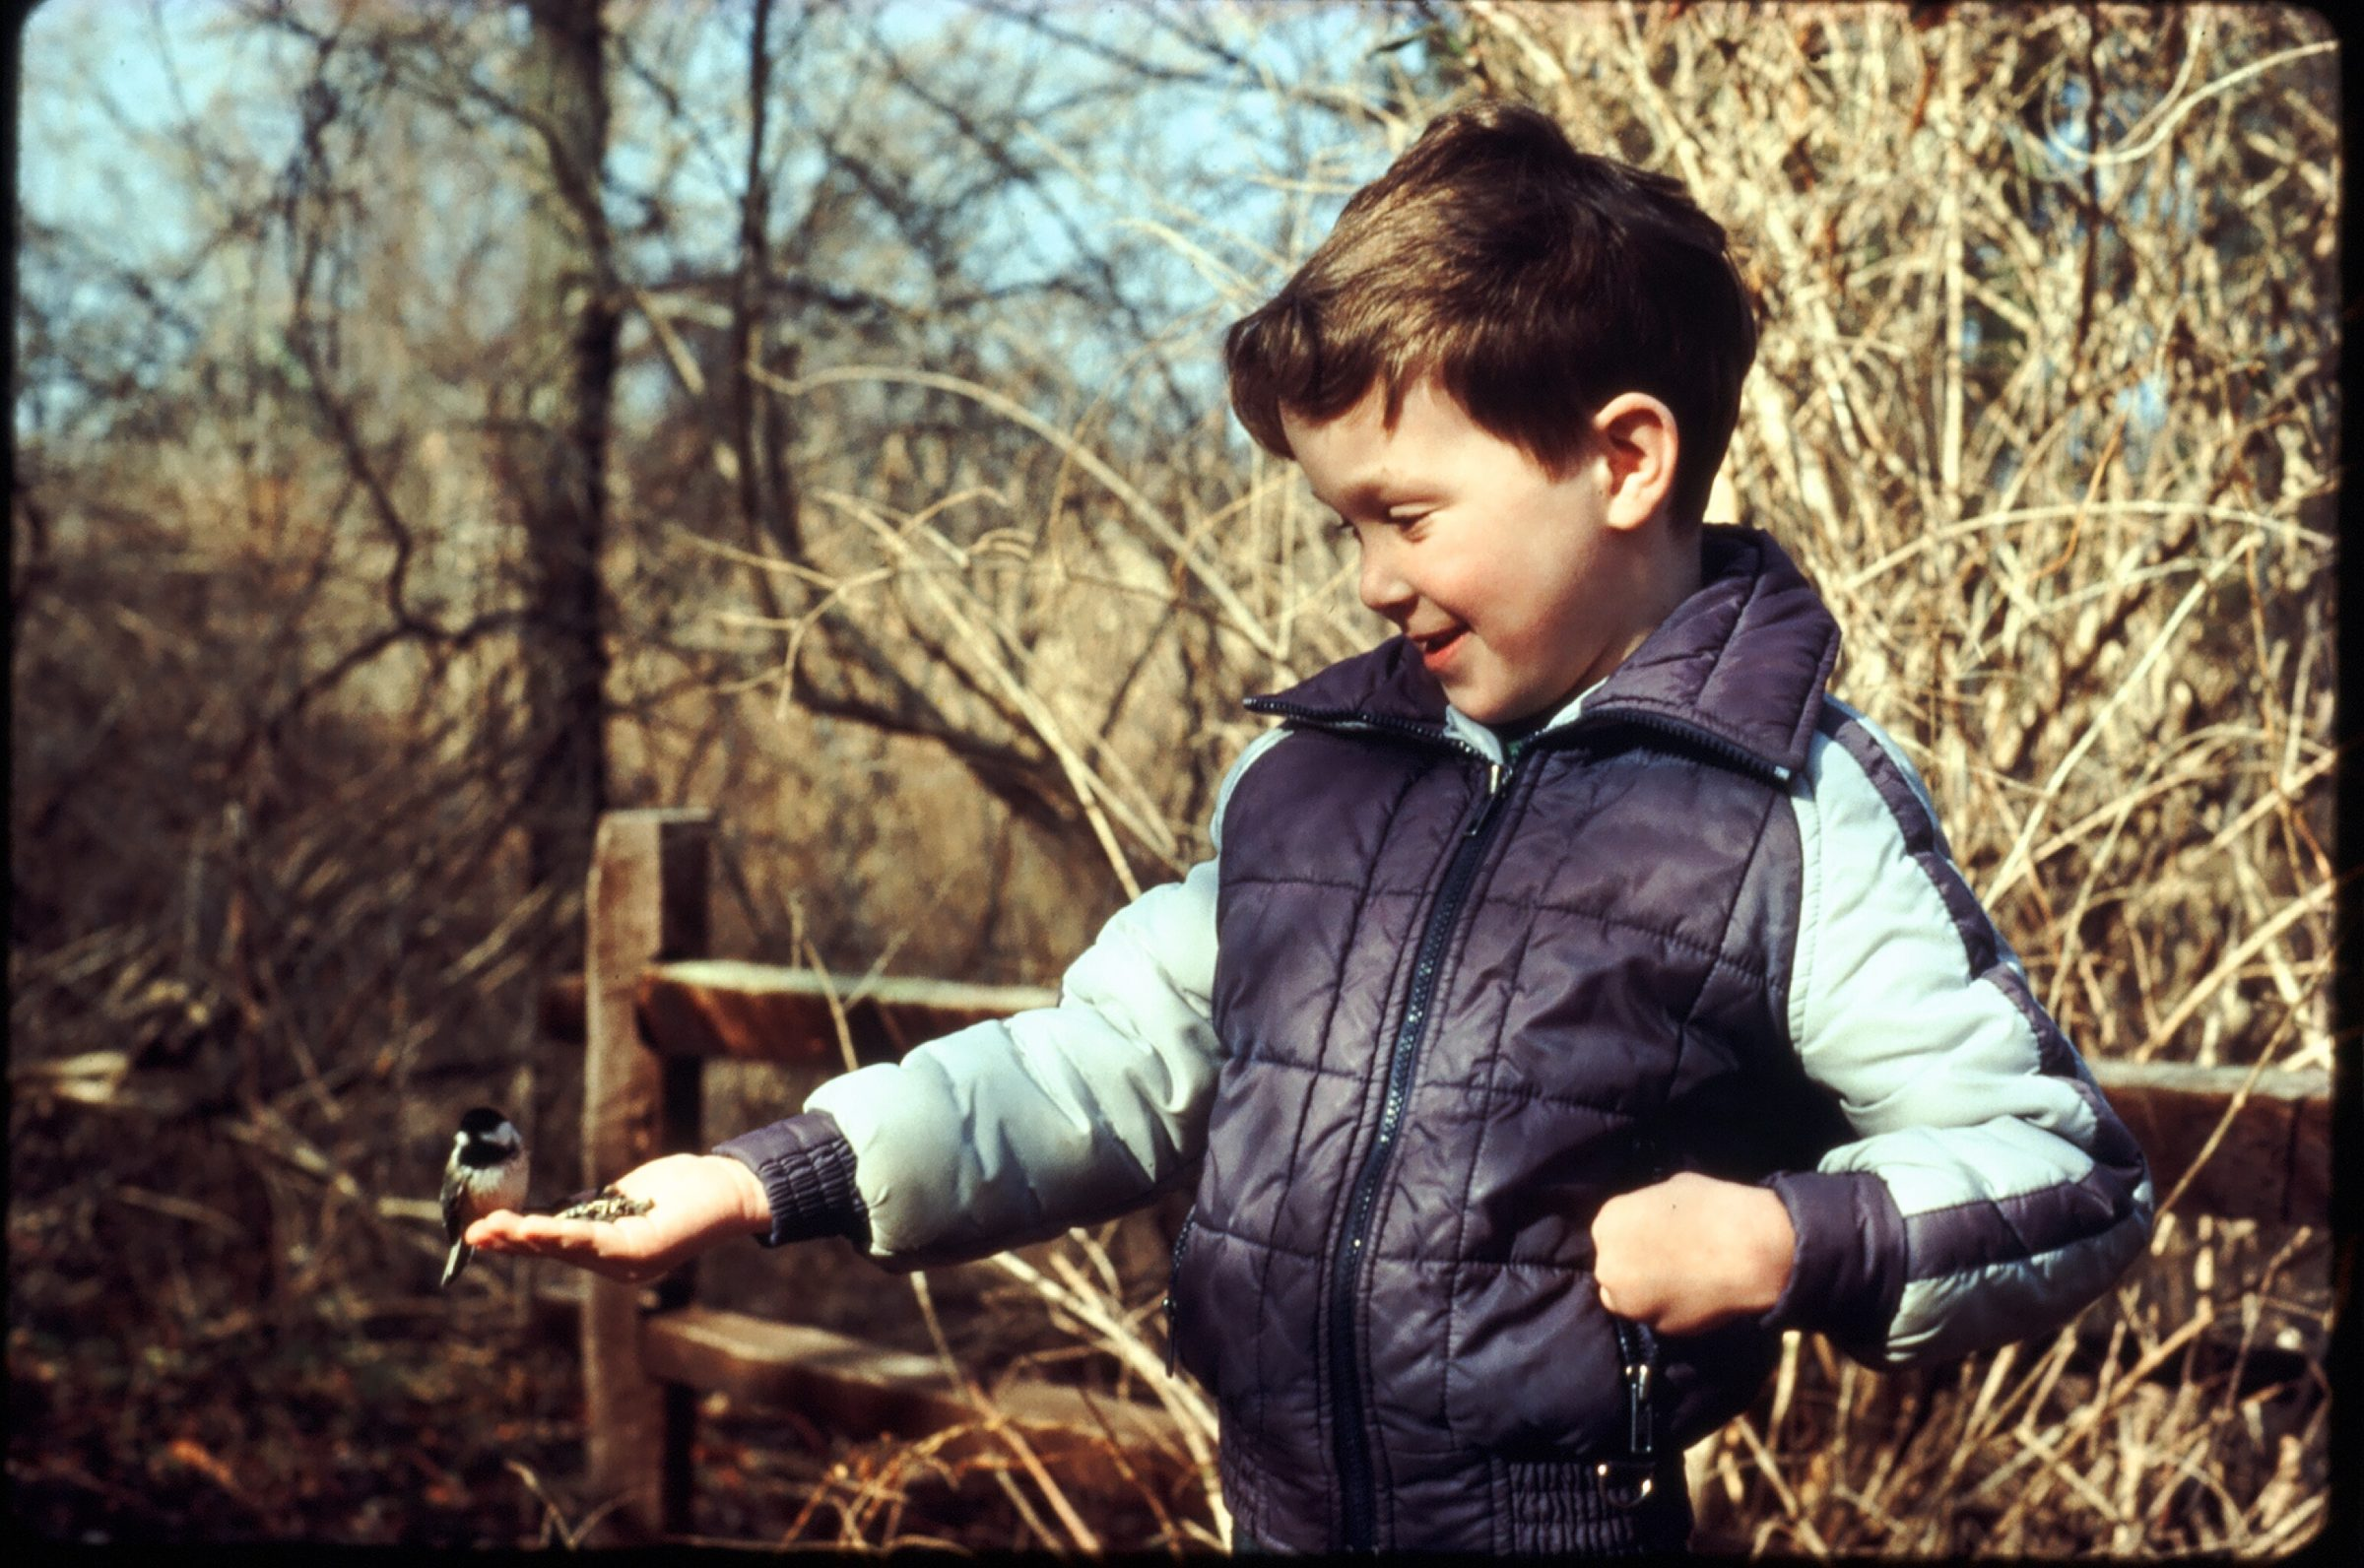 Boy feeding a bird in the Pine Barrens